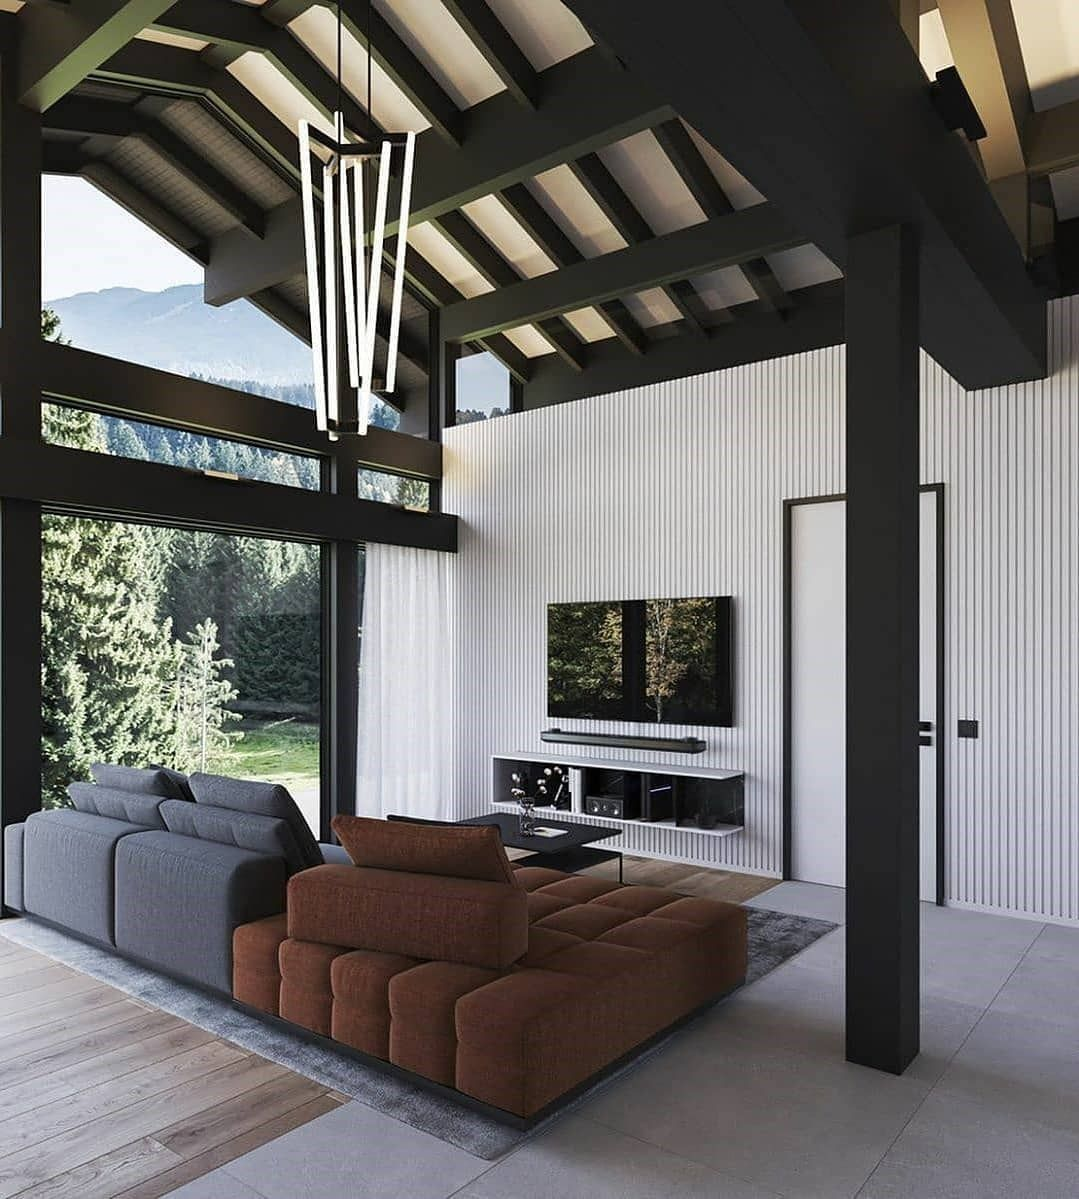 The Most Beautiful House Design Ideas Photos In 2020 House Design Budget Home Decorating House